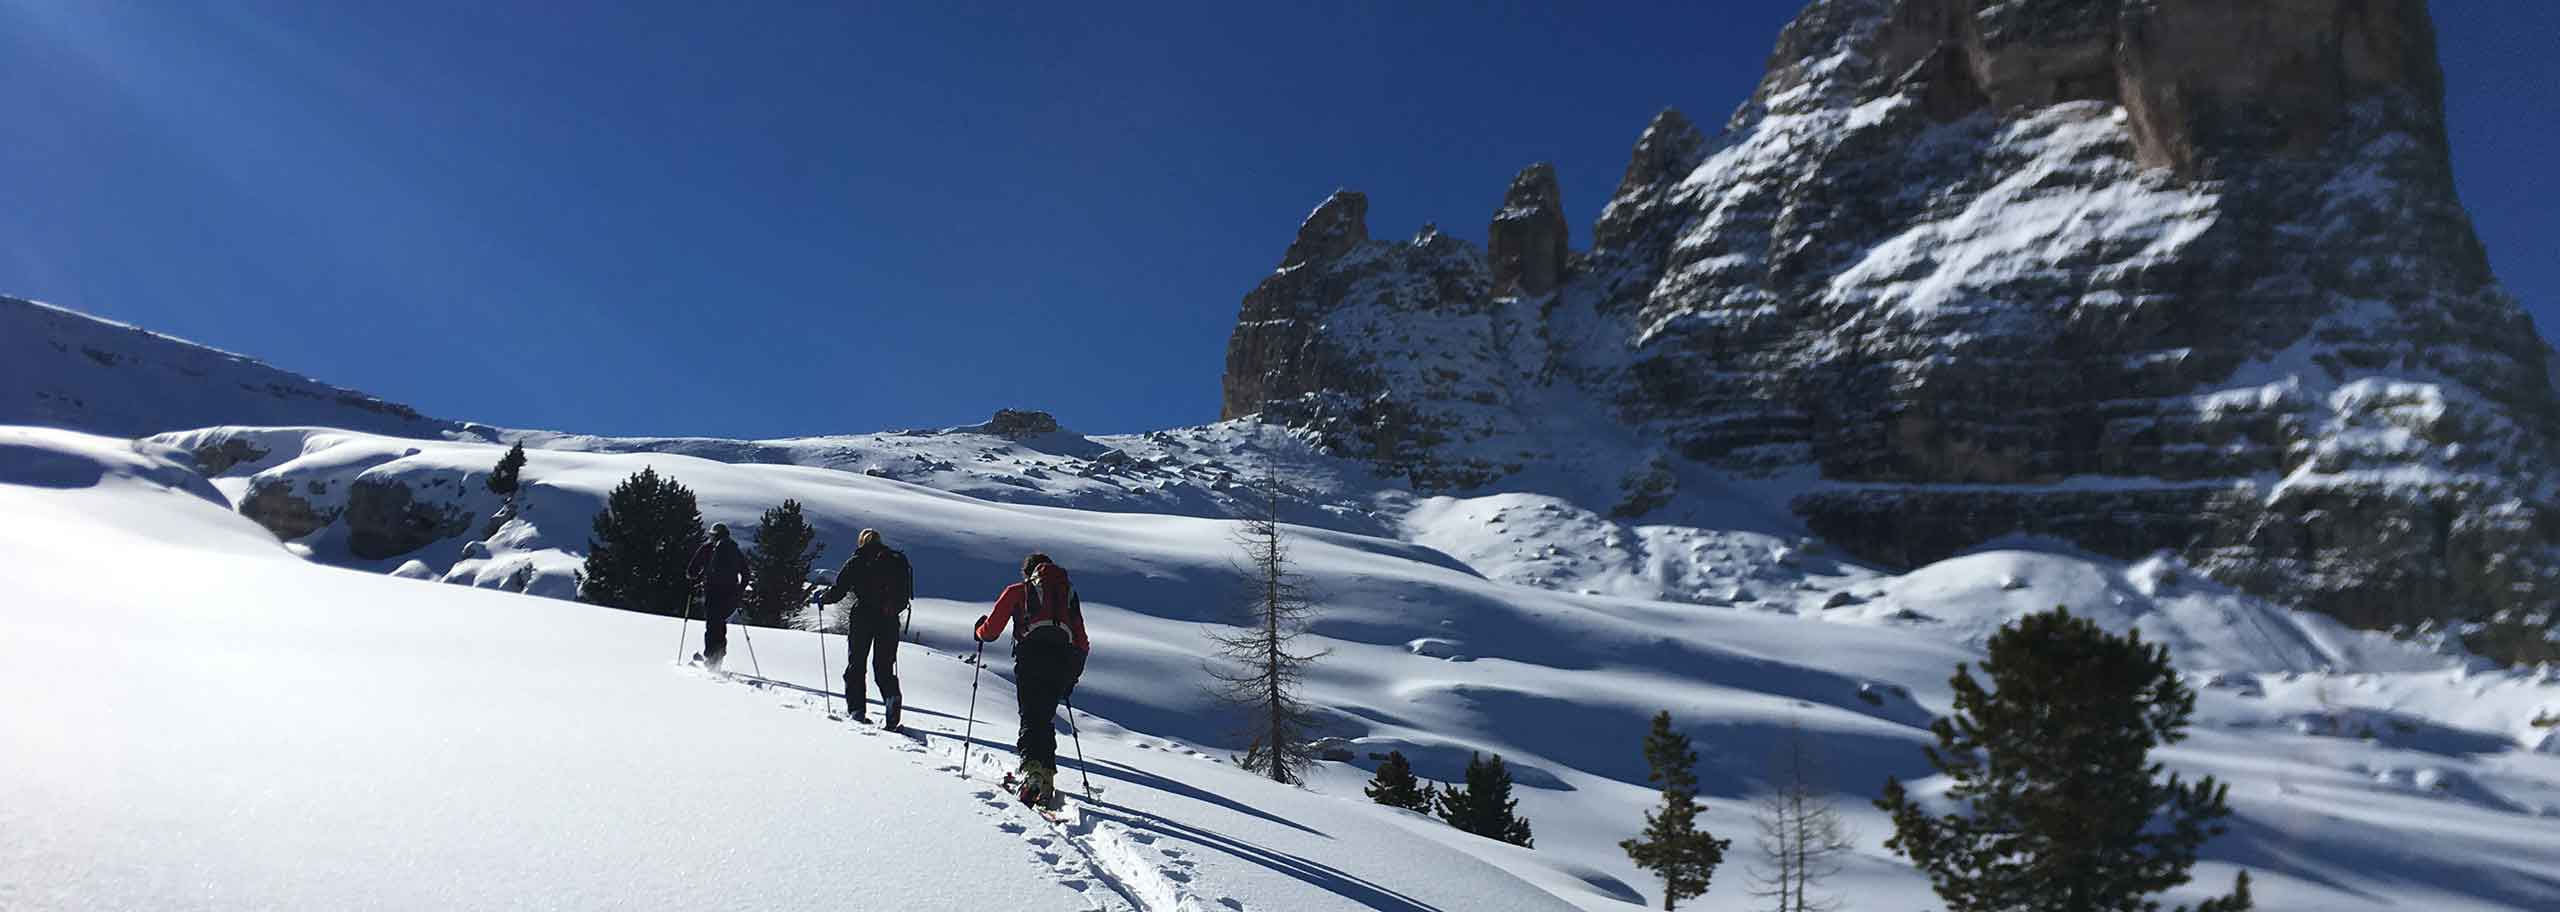 Ski Mountaineering with a Mountain Guide in Cortina d'Ampezzo